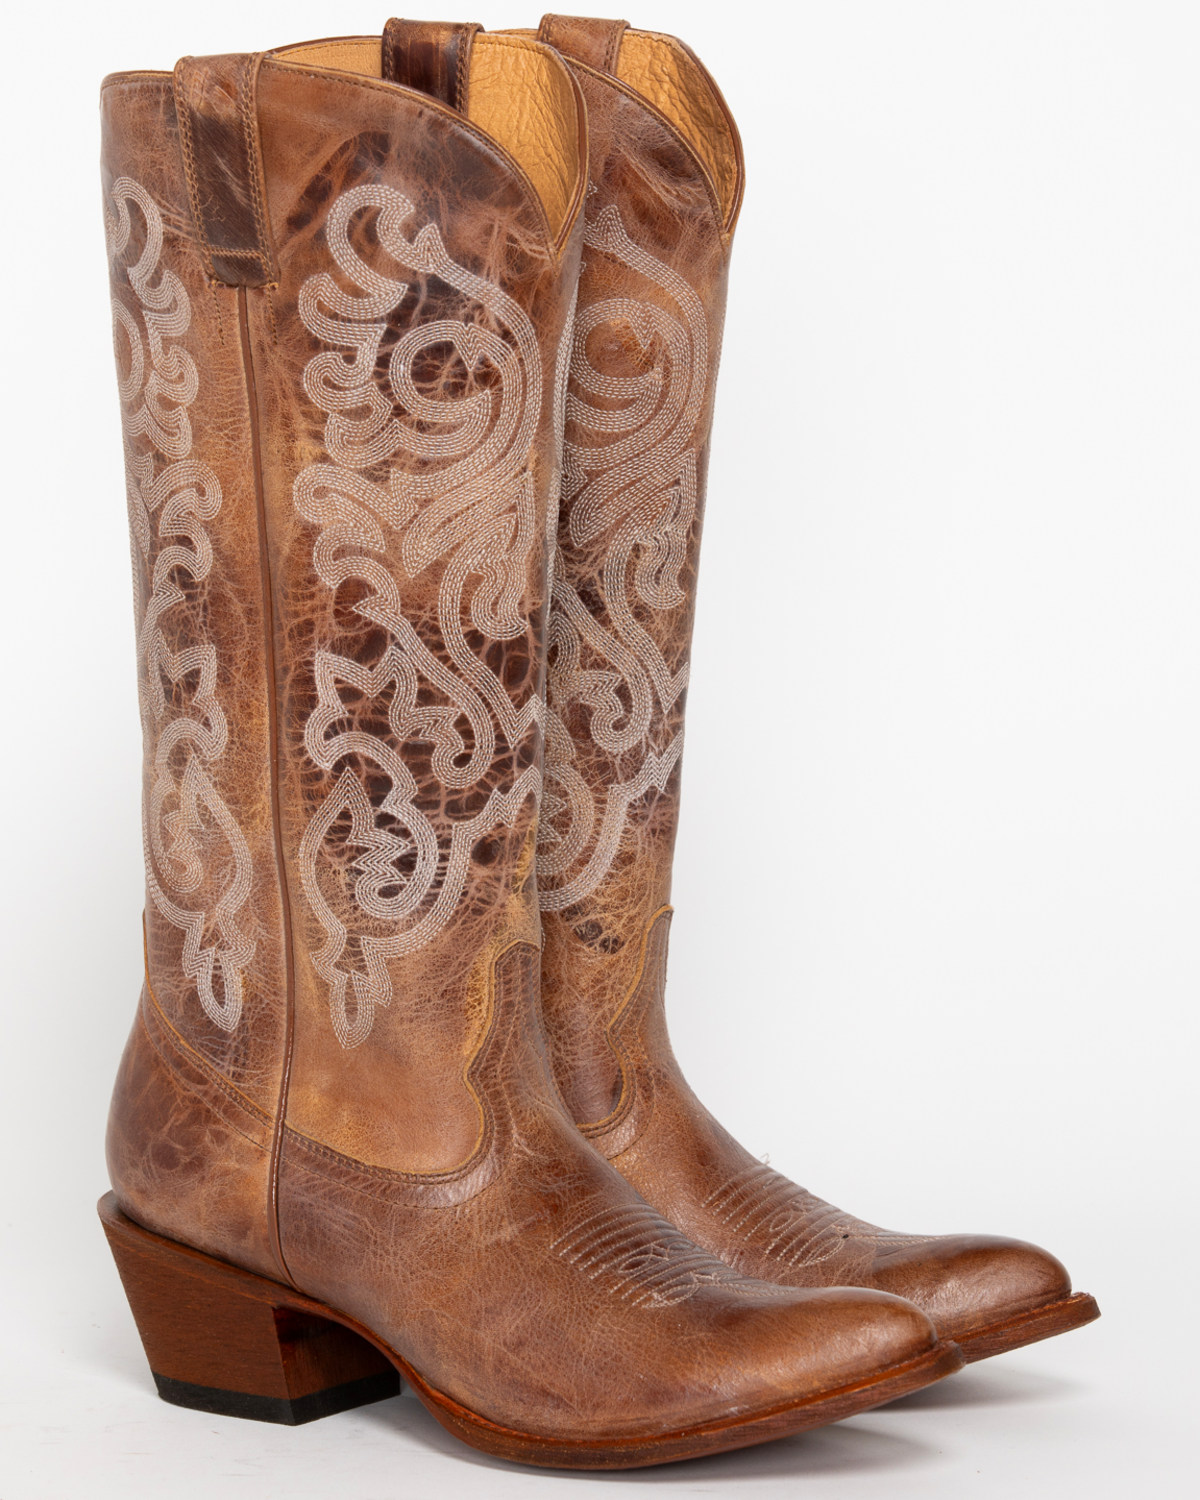 Free shipping BOTH ways on Cowboy Boots, Women, from our vast selection of styles. Fast delivery, and 24/7/ real-person service with a smile. Click or call